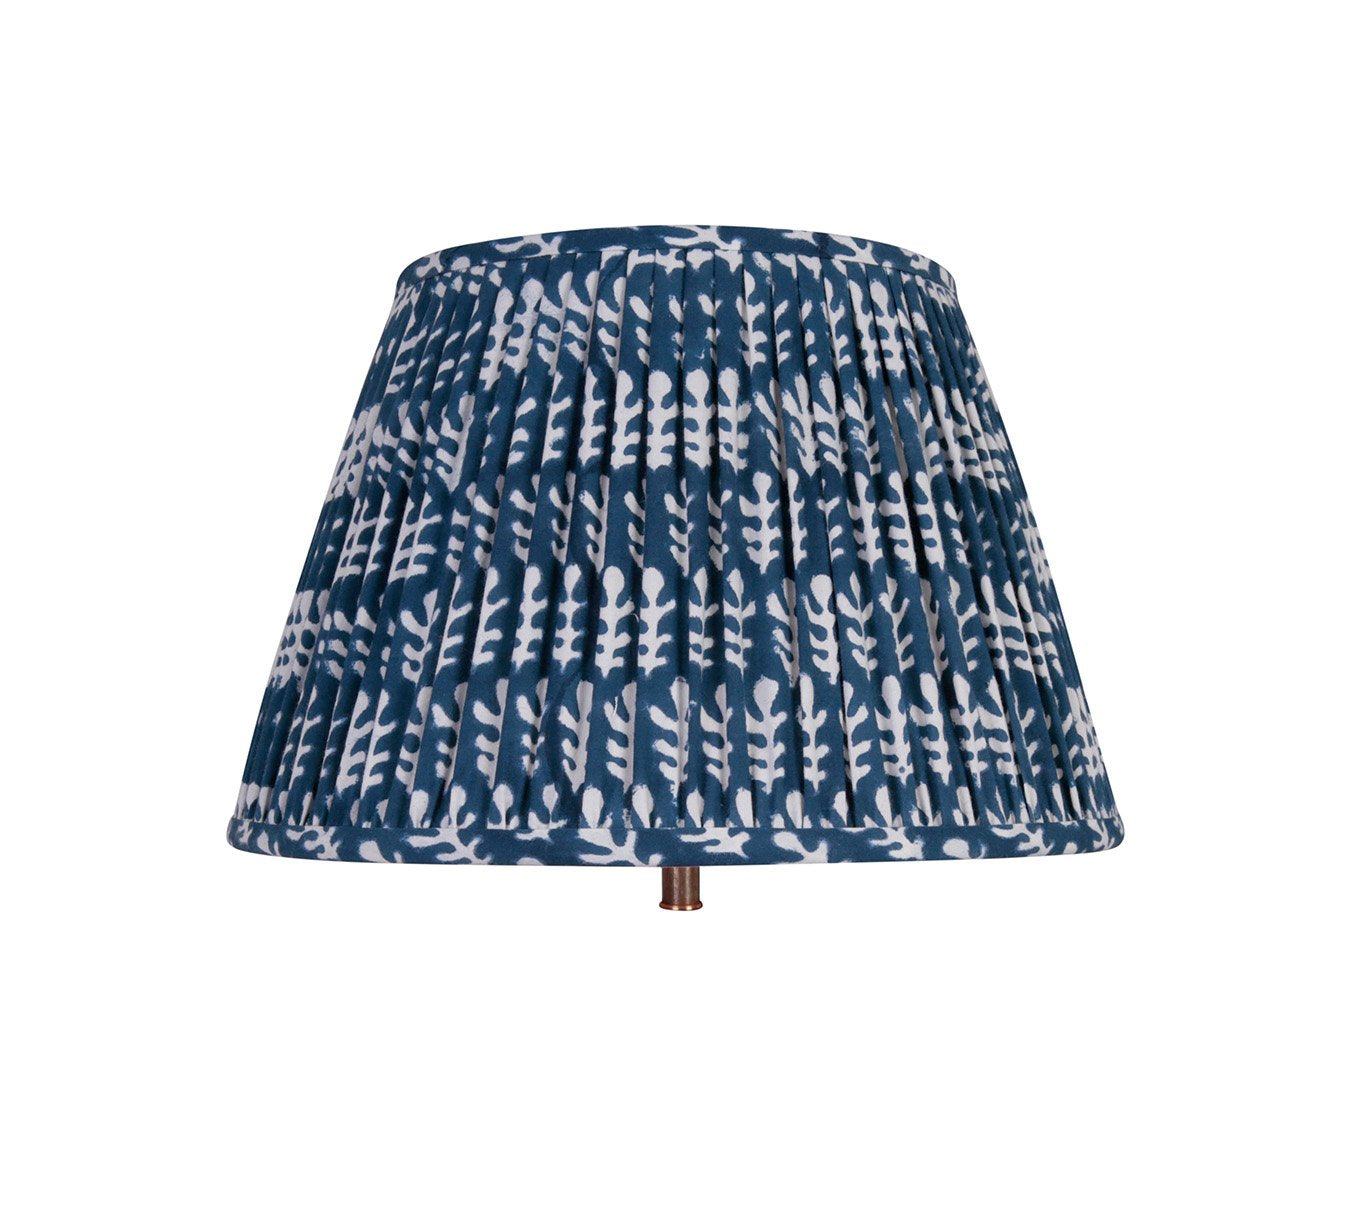 Lampshade - Pleated - Bagru - Dark Blue - 14""